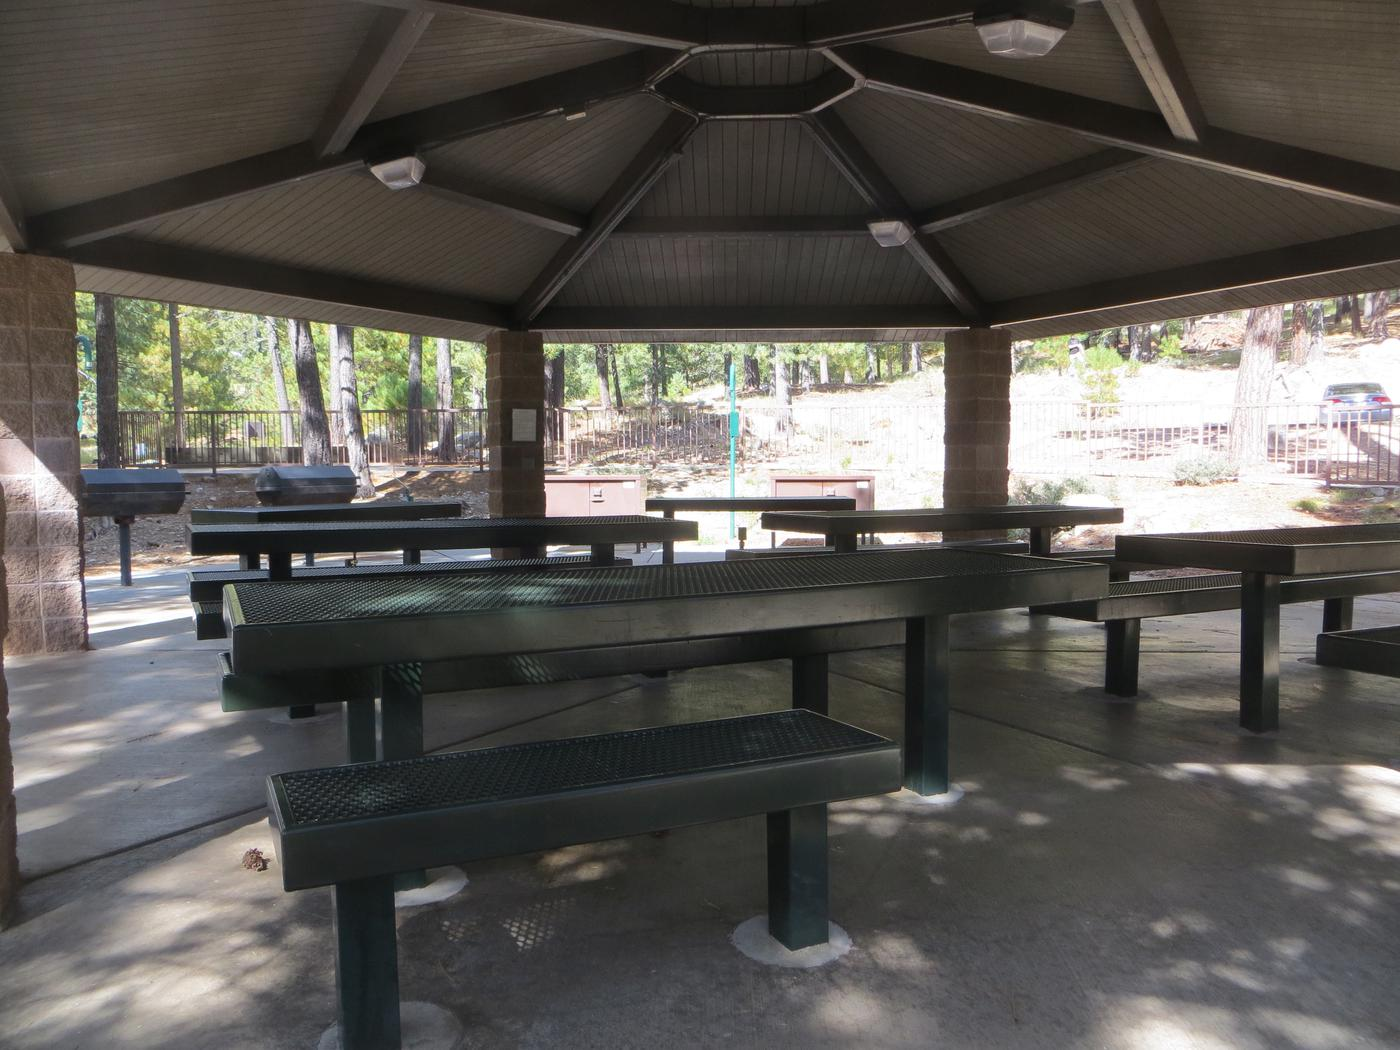 View from under the ramada of the picnic area at Group Site #01, Whitetail Campground.